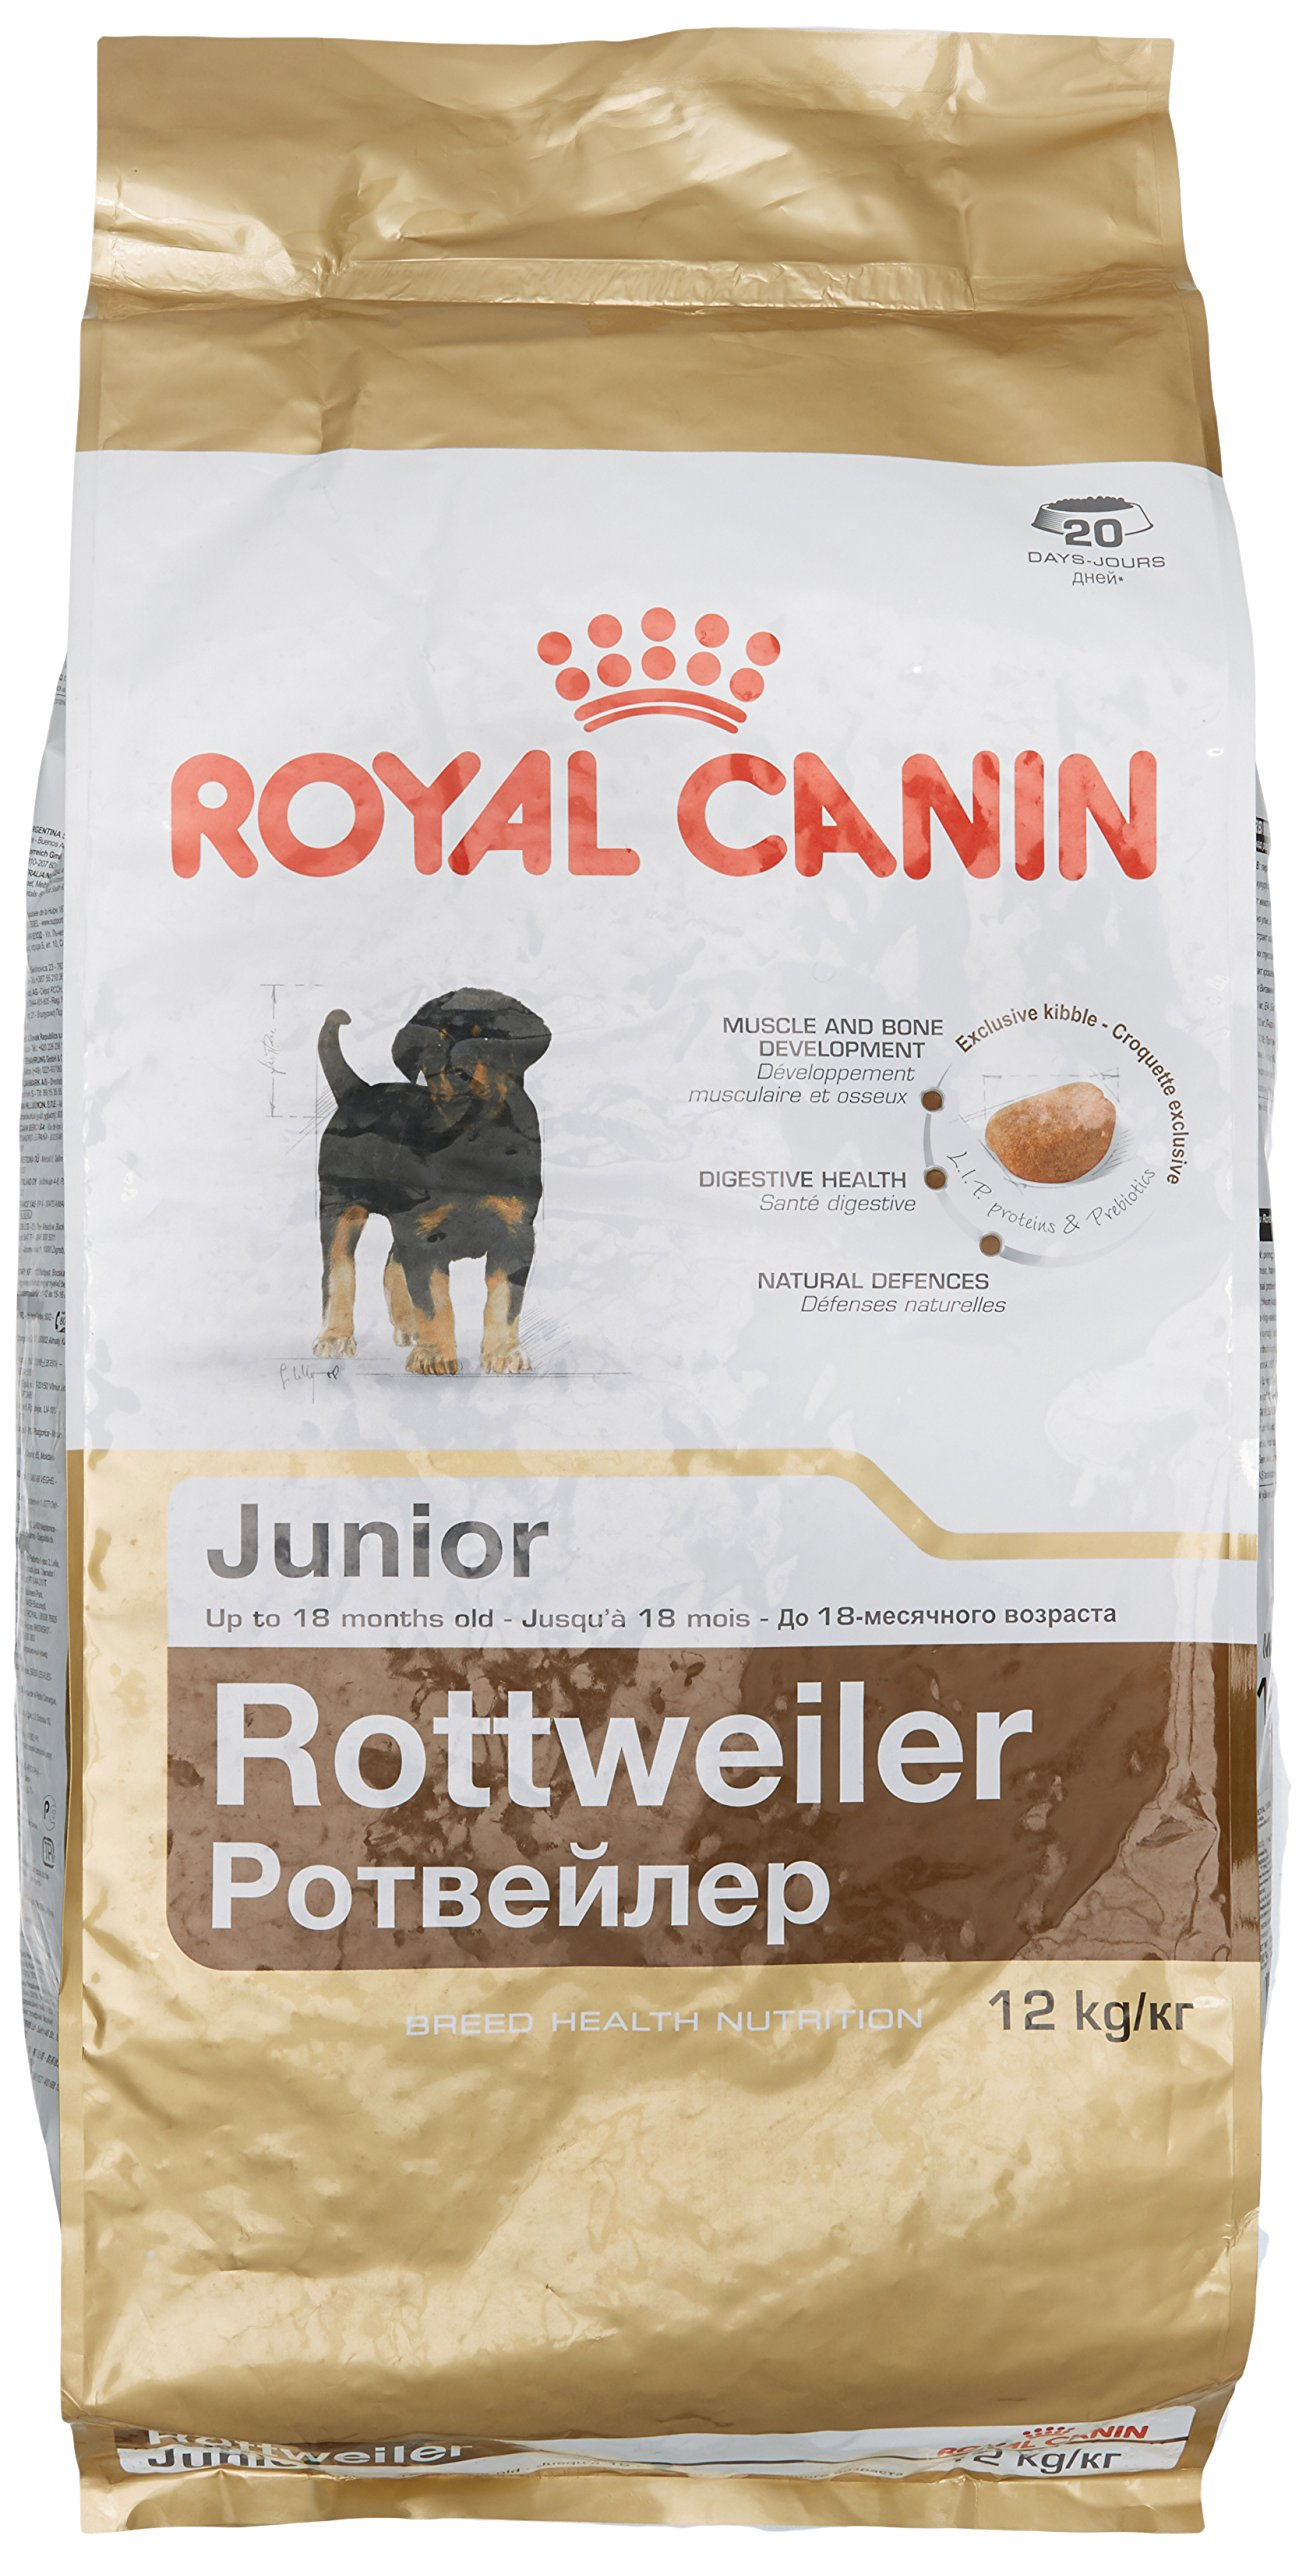 Royal Canin Dog Food Rottweiler Junior 12kg